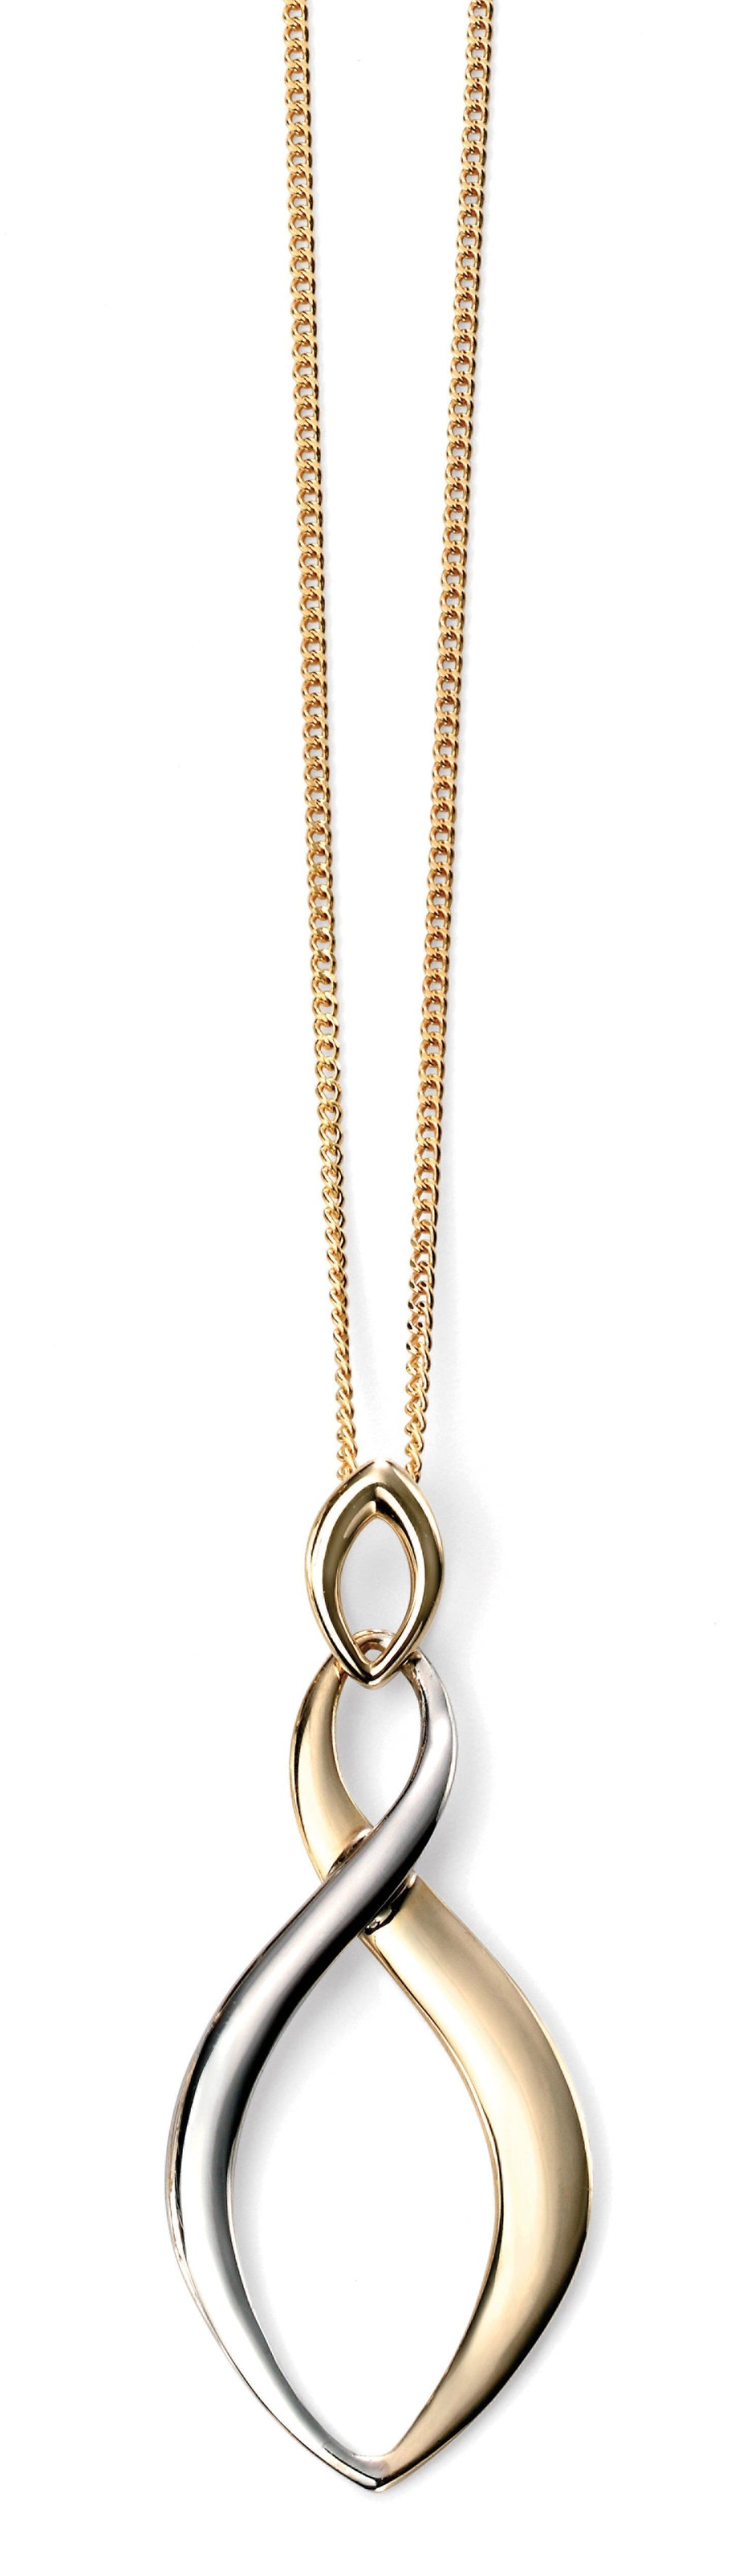 9ct Yellow & White Gold Twist Pendant